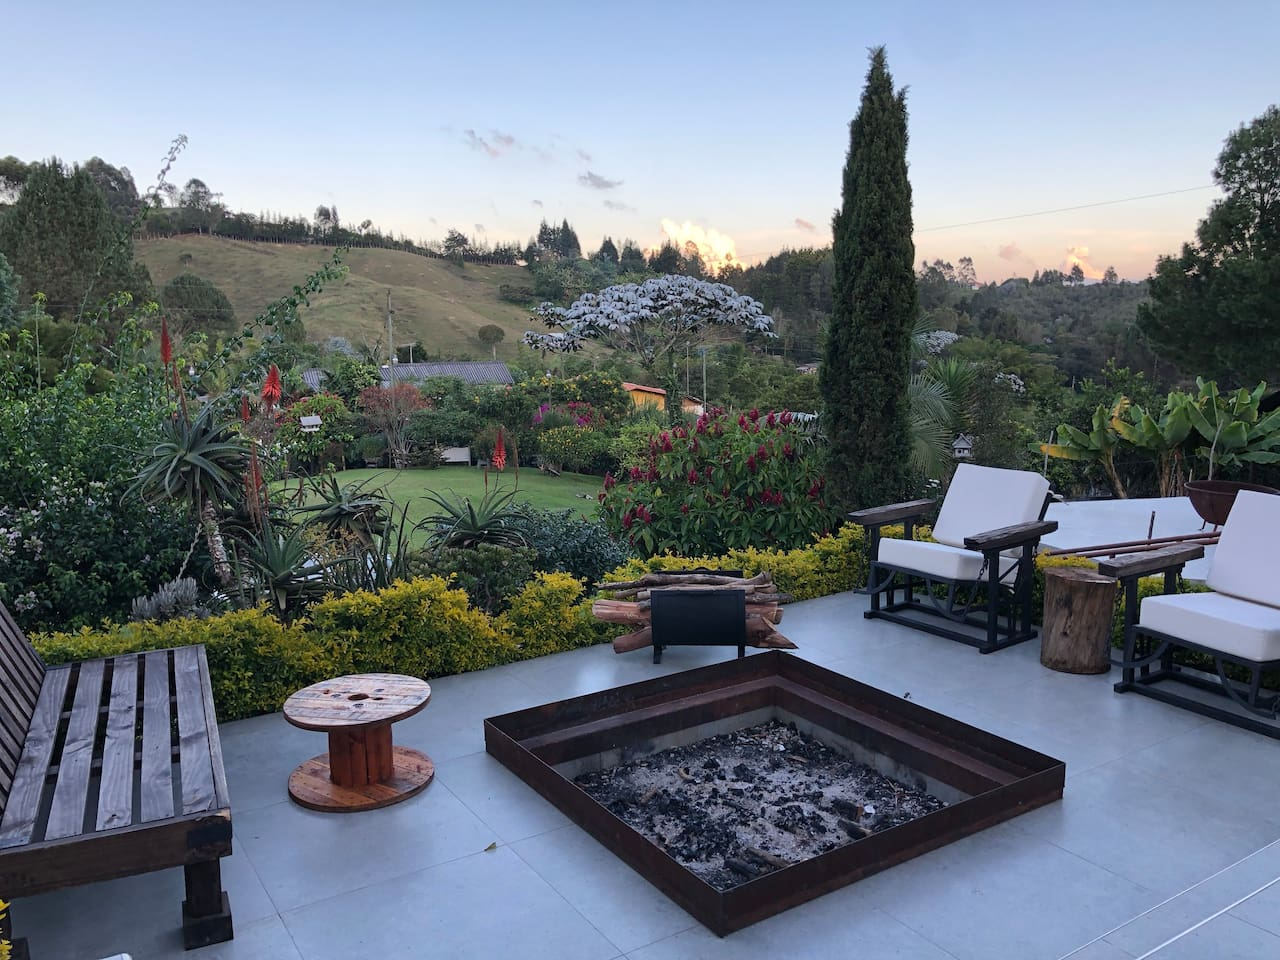 Bon Fire pit and sitting area